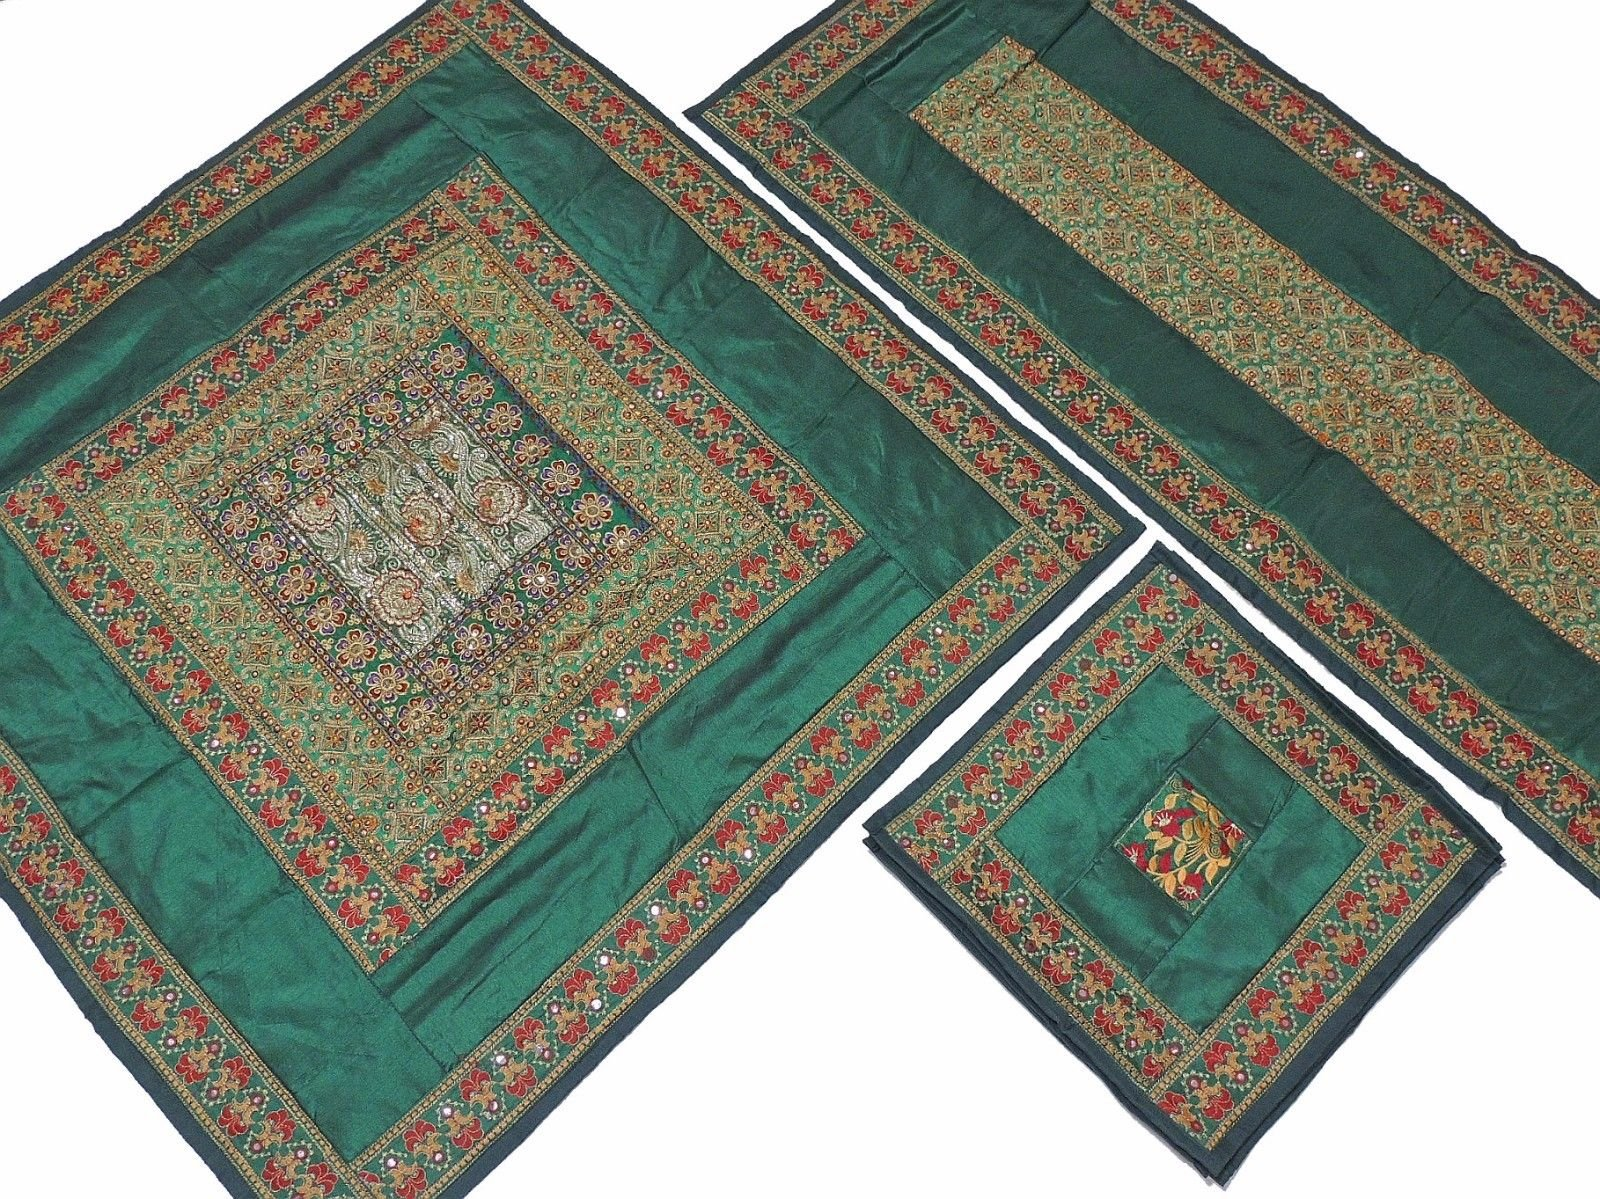 NovaHaat Pine Green Pretty Embroidered Tablecloth, Table Runner and 4 Placemats Set in Dupioni Art Silk from India ~ Tablecloth - 40 Inch, Runner - 60 Inch x 20 Inch, Placemats - 16 Inch